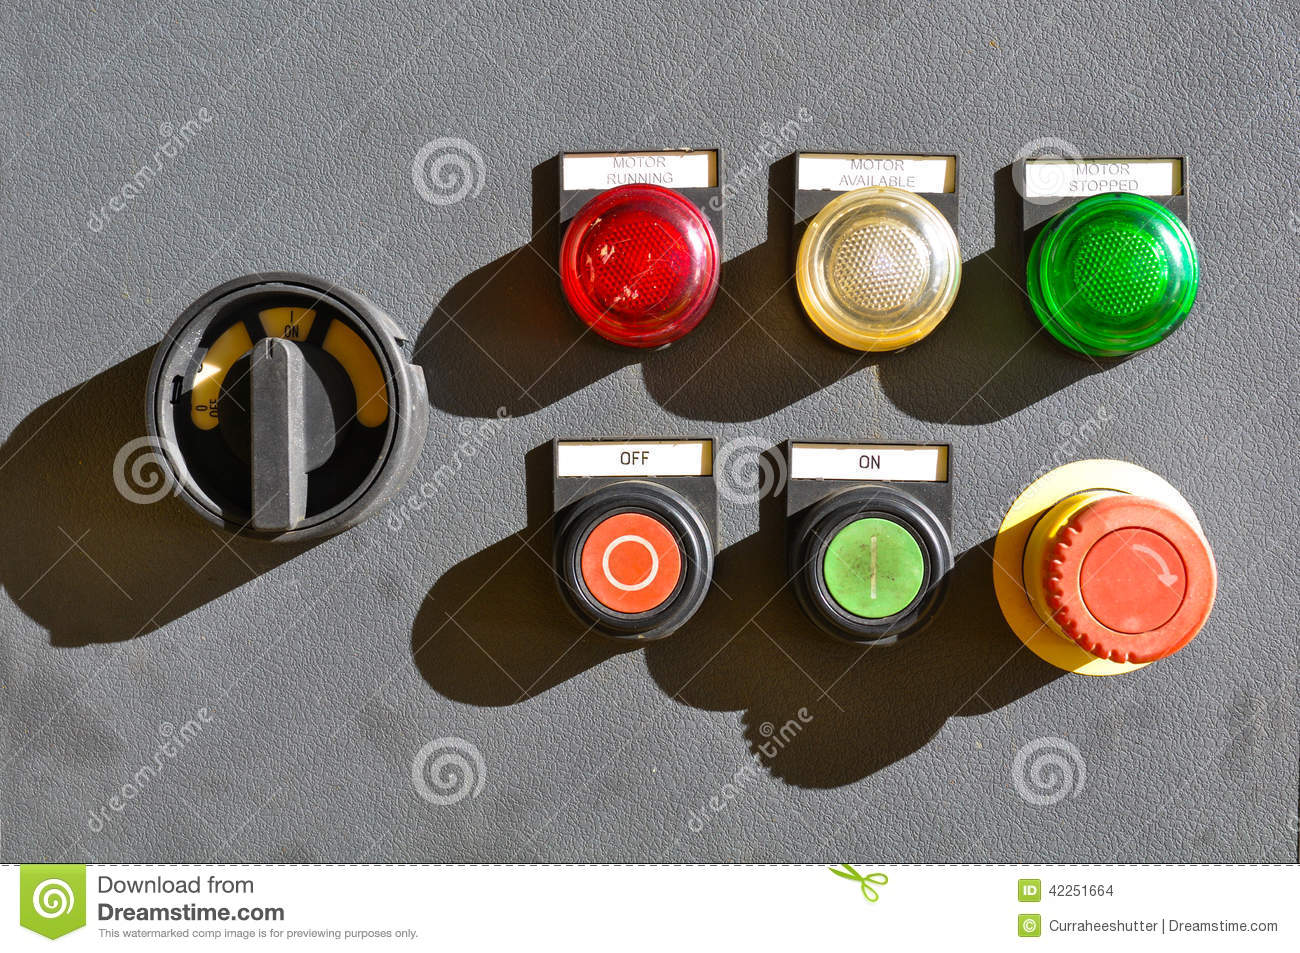 Industrial Electrical Switch Panel Stock Photo - Image of electric ...